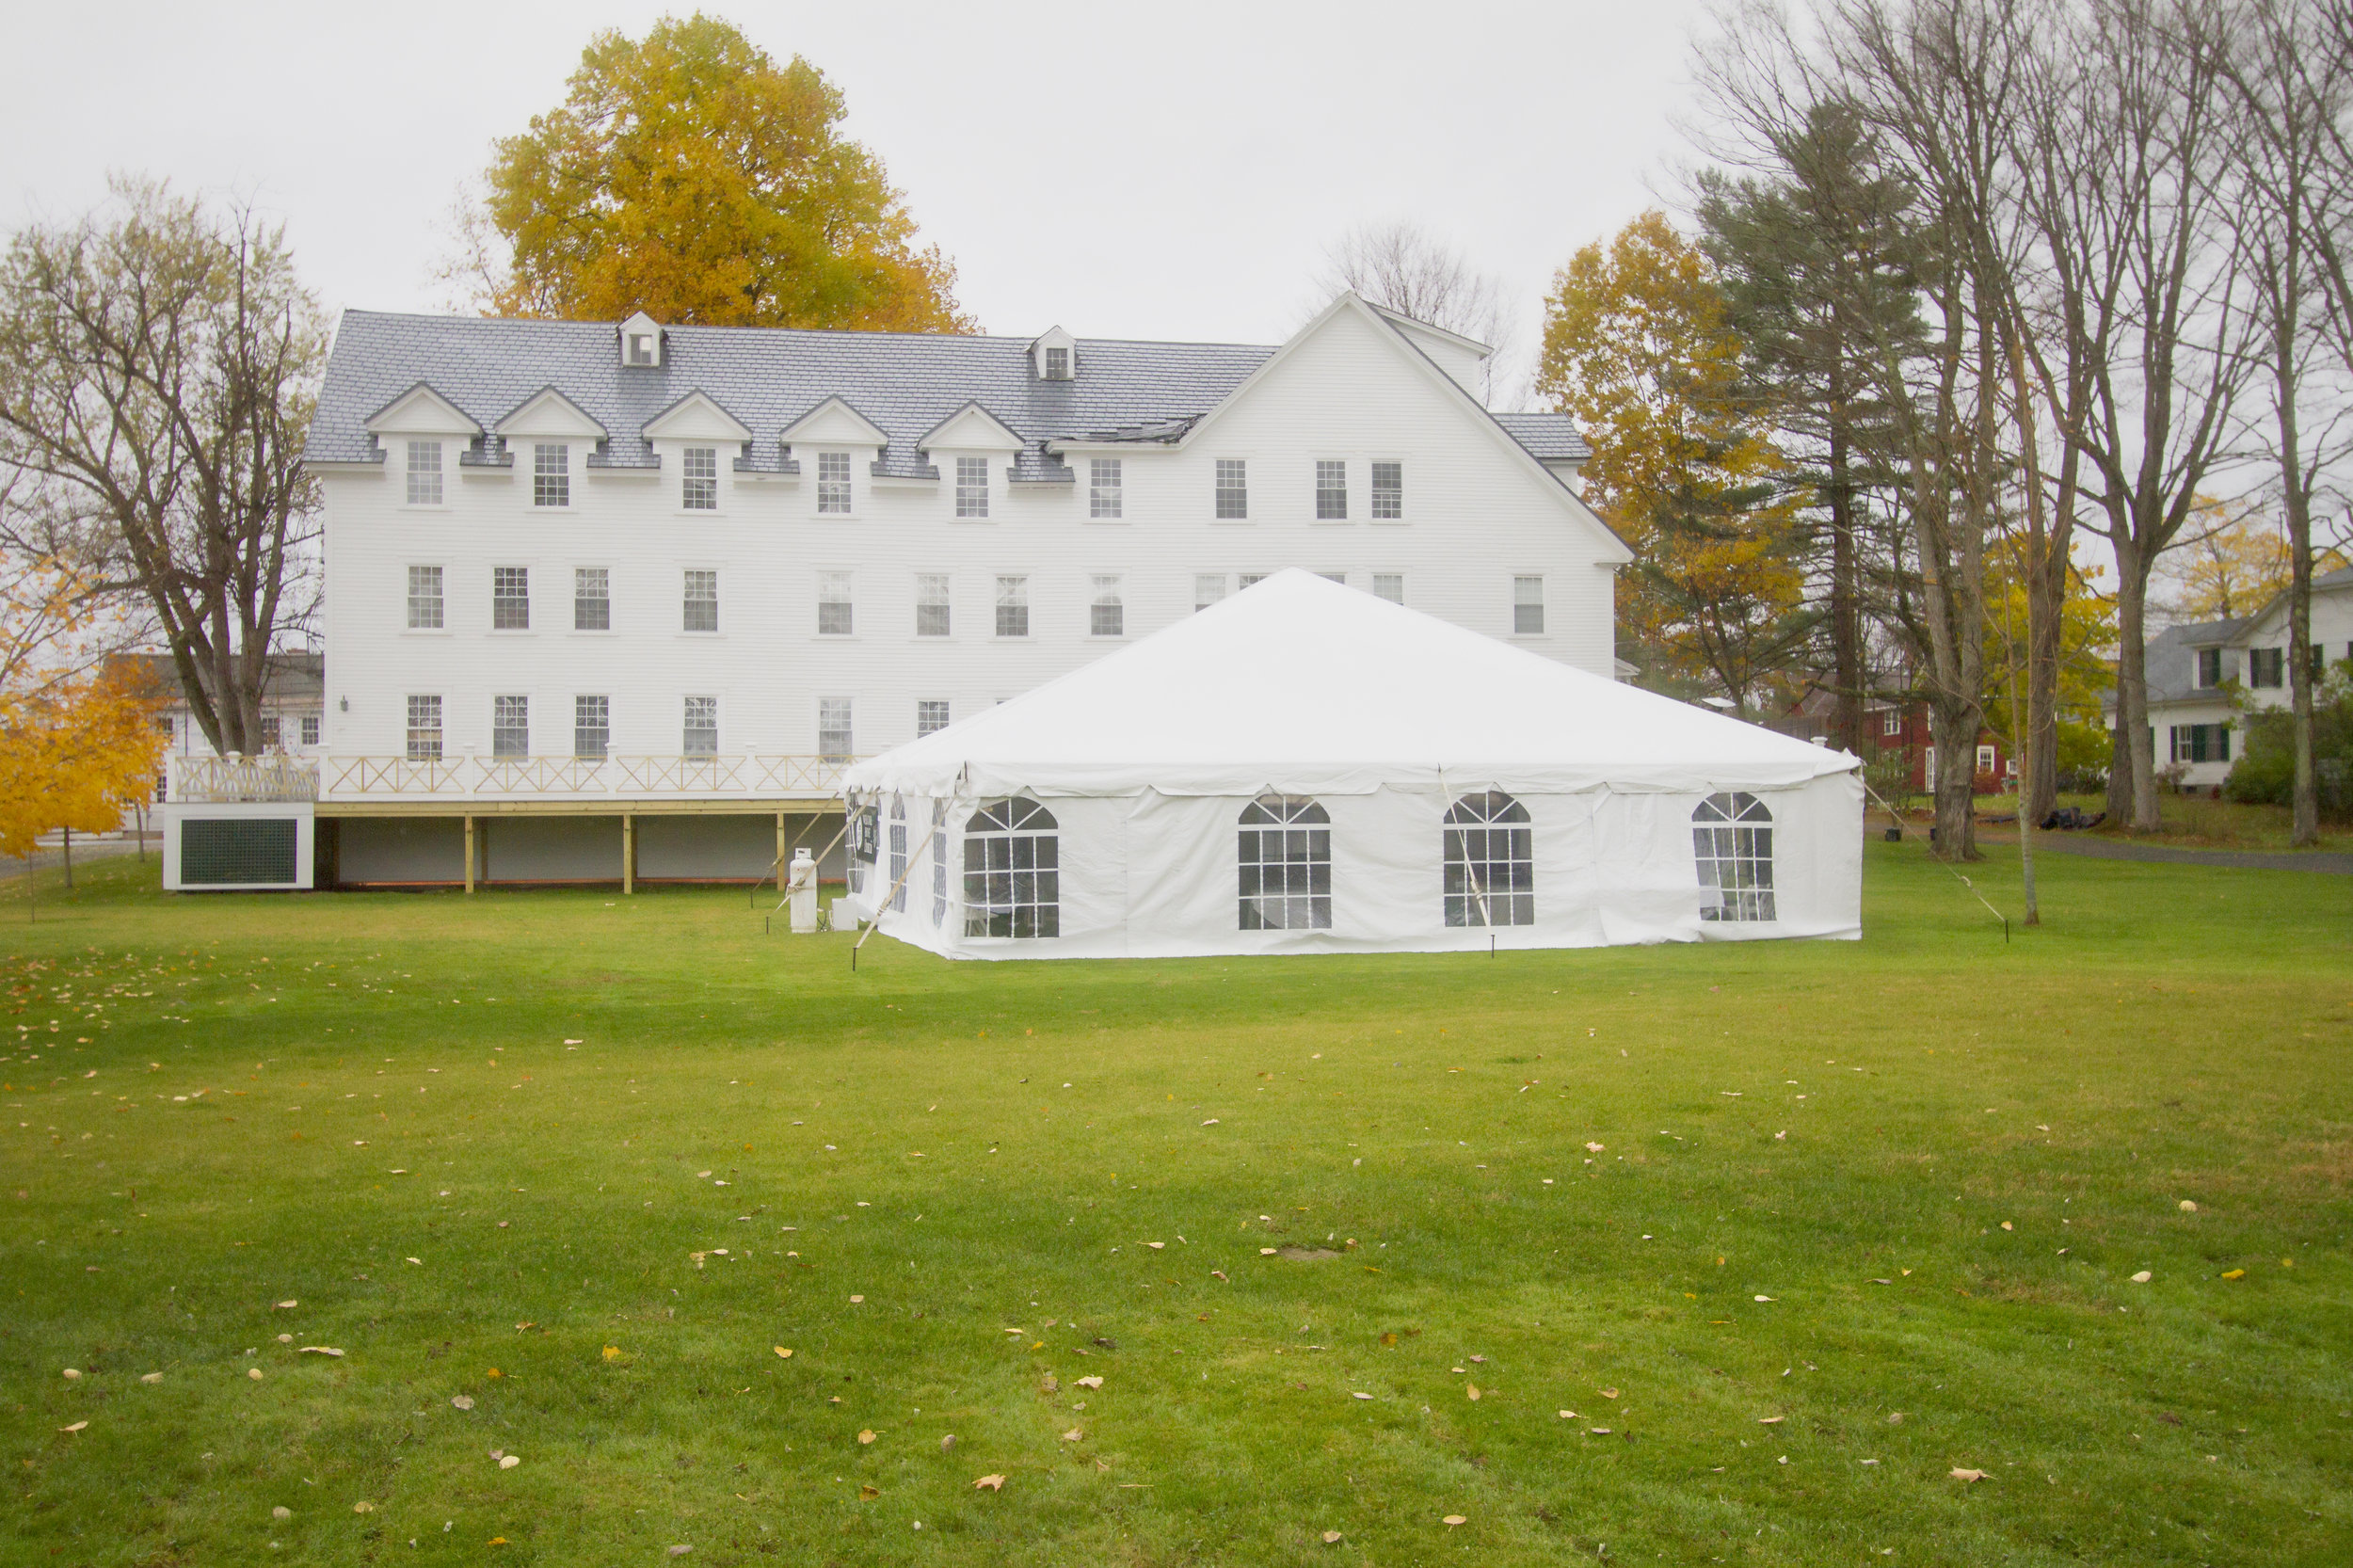 Utilize the lawn for autumn events